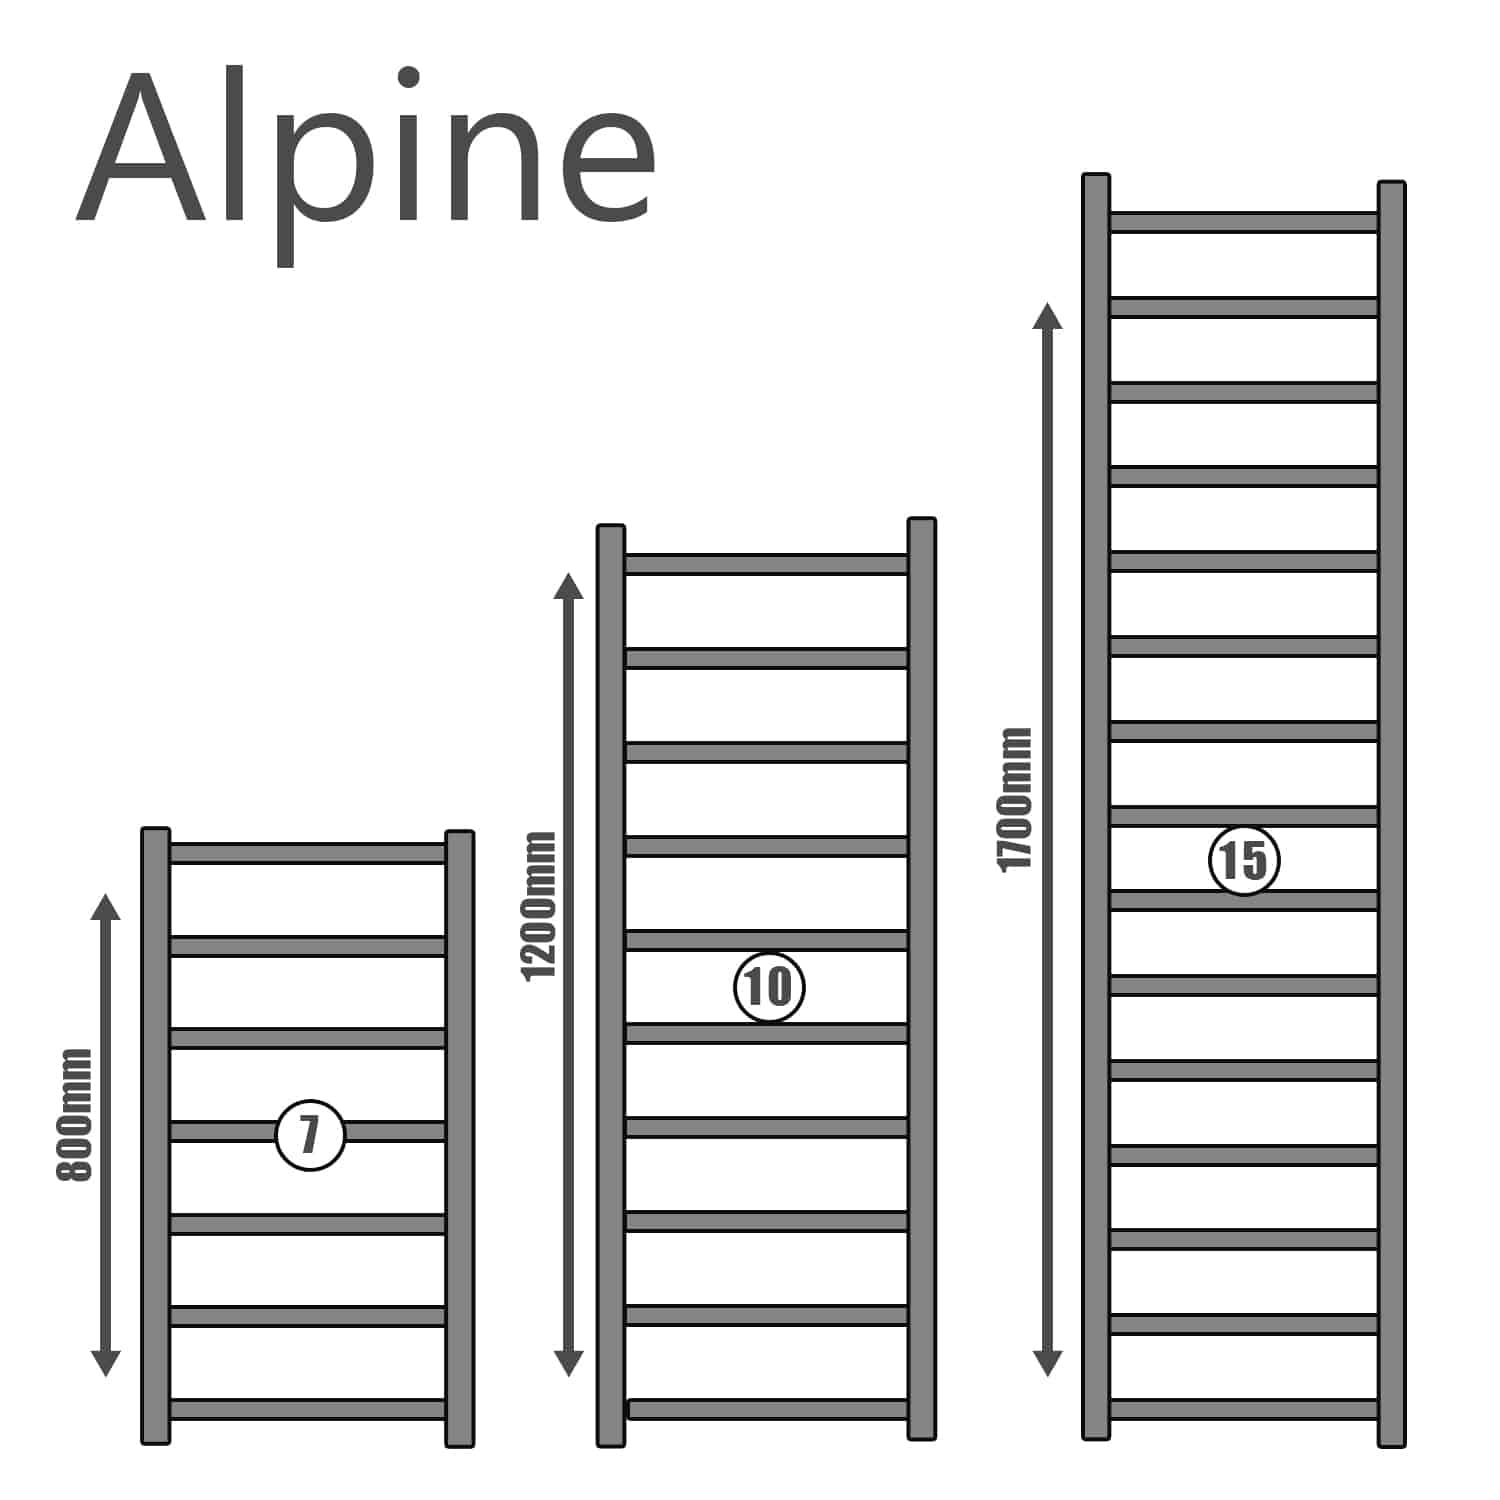 Heated Towel Rail Timer Wiring Diagram: ALPINE Chrome Modern Towel Warmer / Heated Towel Rail